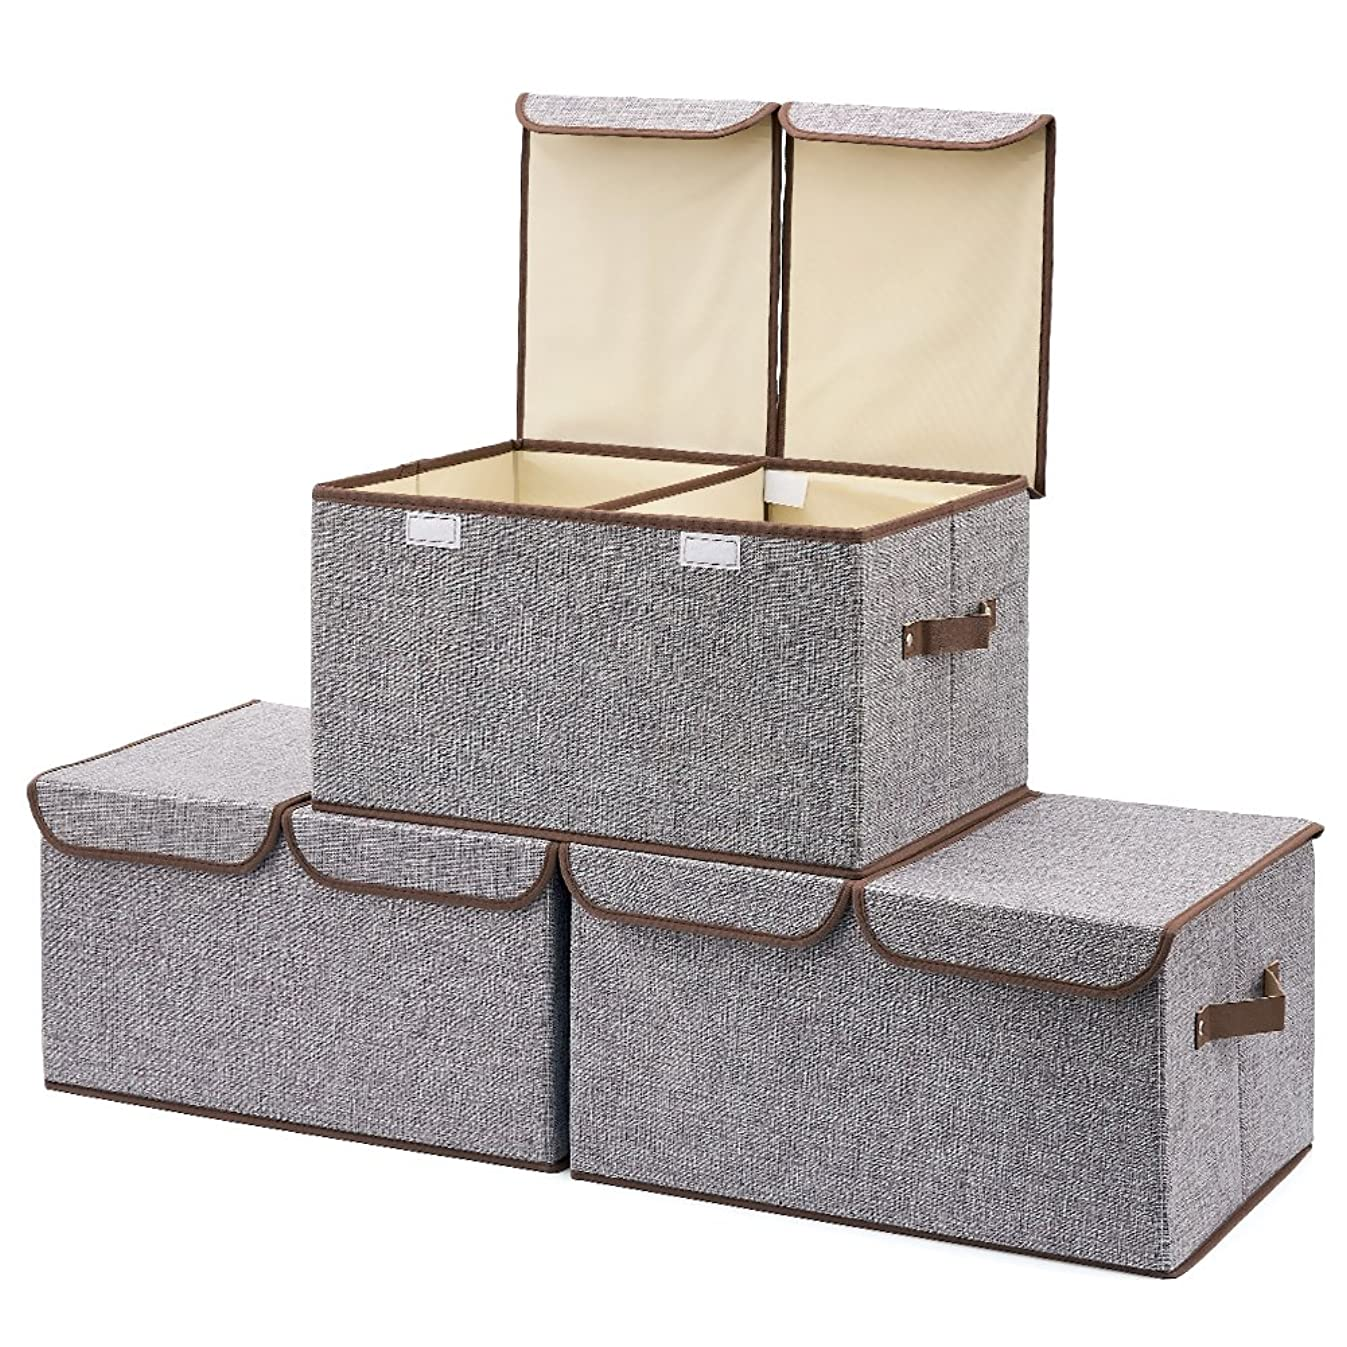 Large Storage Boxes [3-Pack] EZOWare Large Linen Fabric Foldable Storage Cubes Bin Box Containers with Lid and Handles for Nursery, Closet, Kids Room, Toys, Baby Products (Gray)